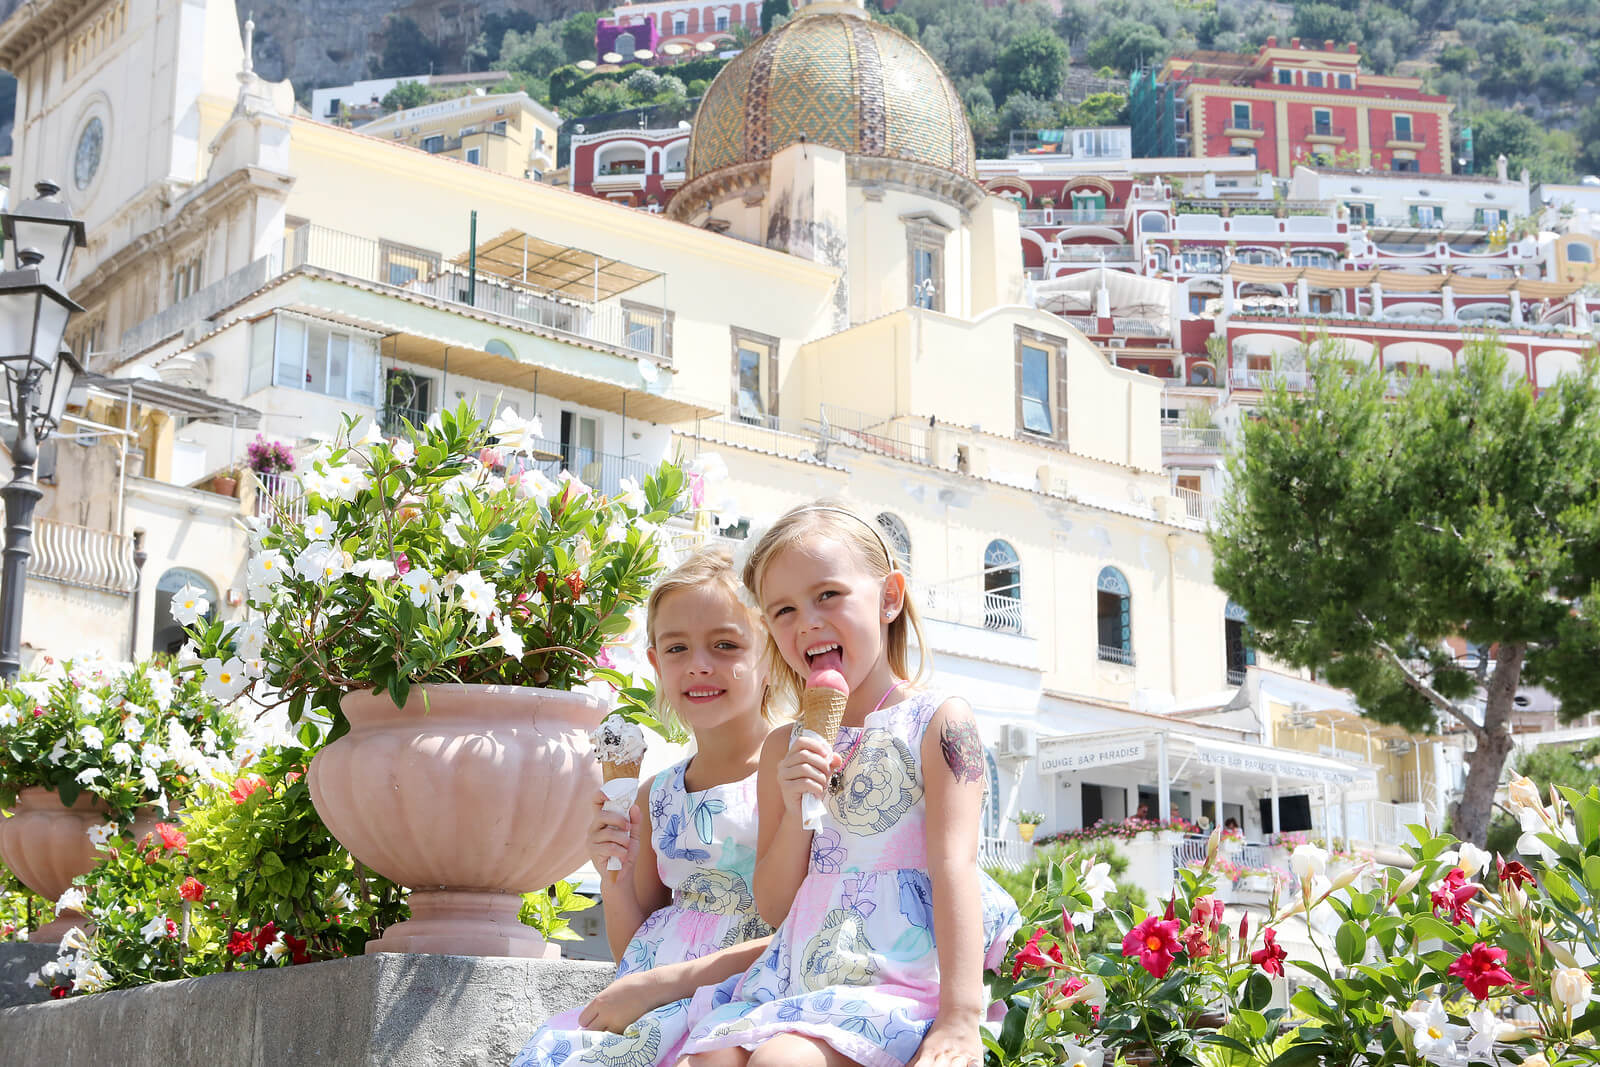 Young girls eating ice cream together in Amalfi Coast, Italy